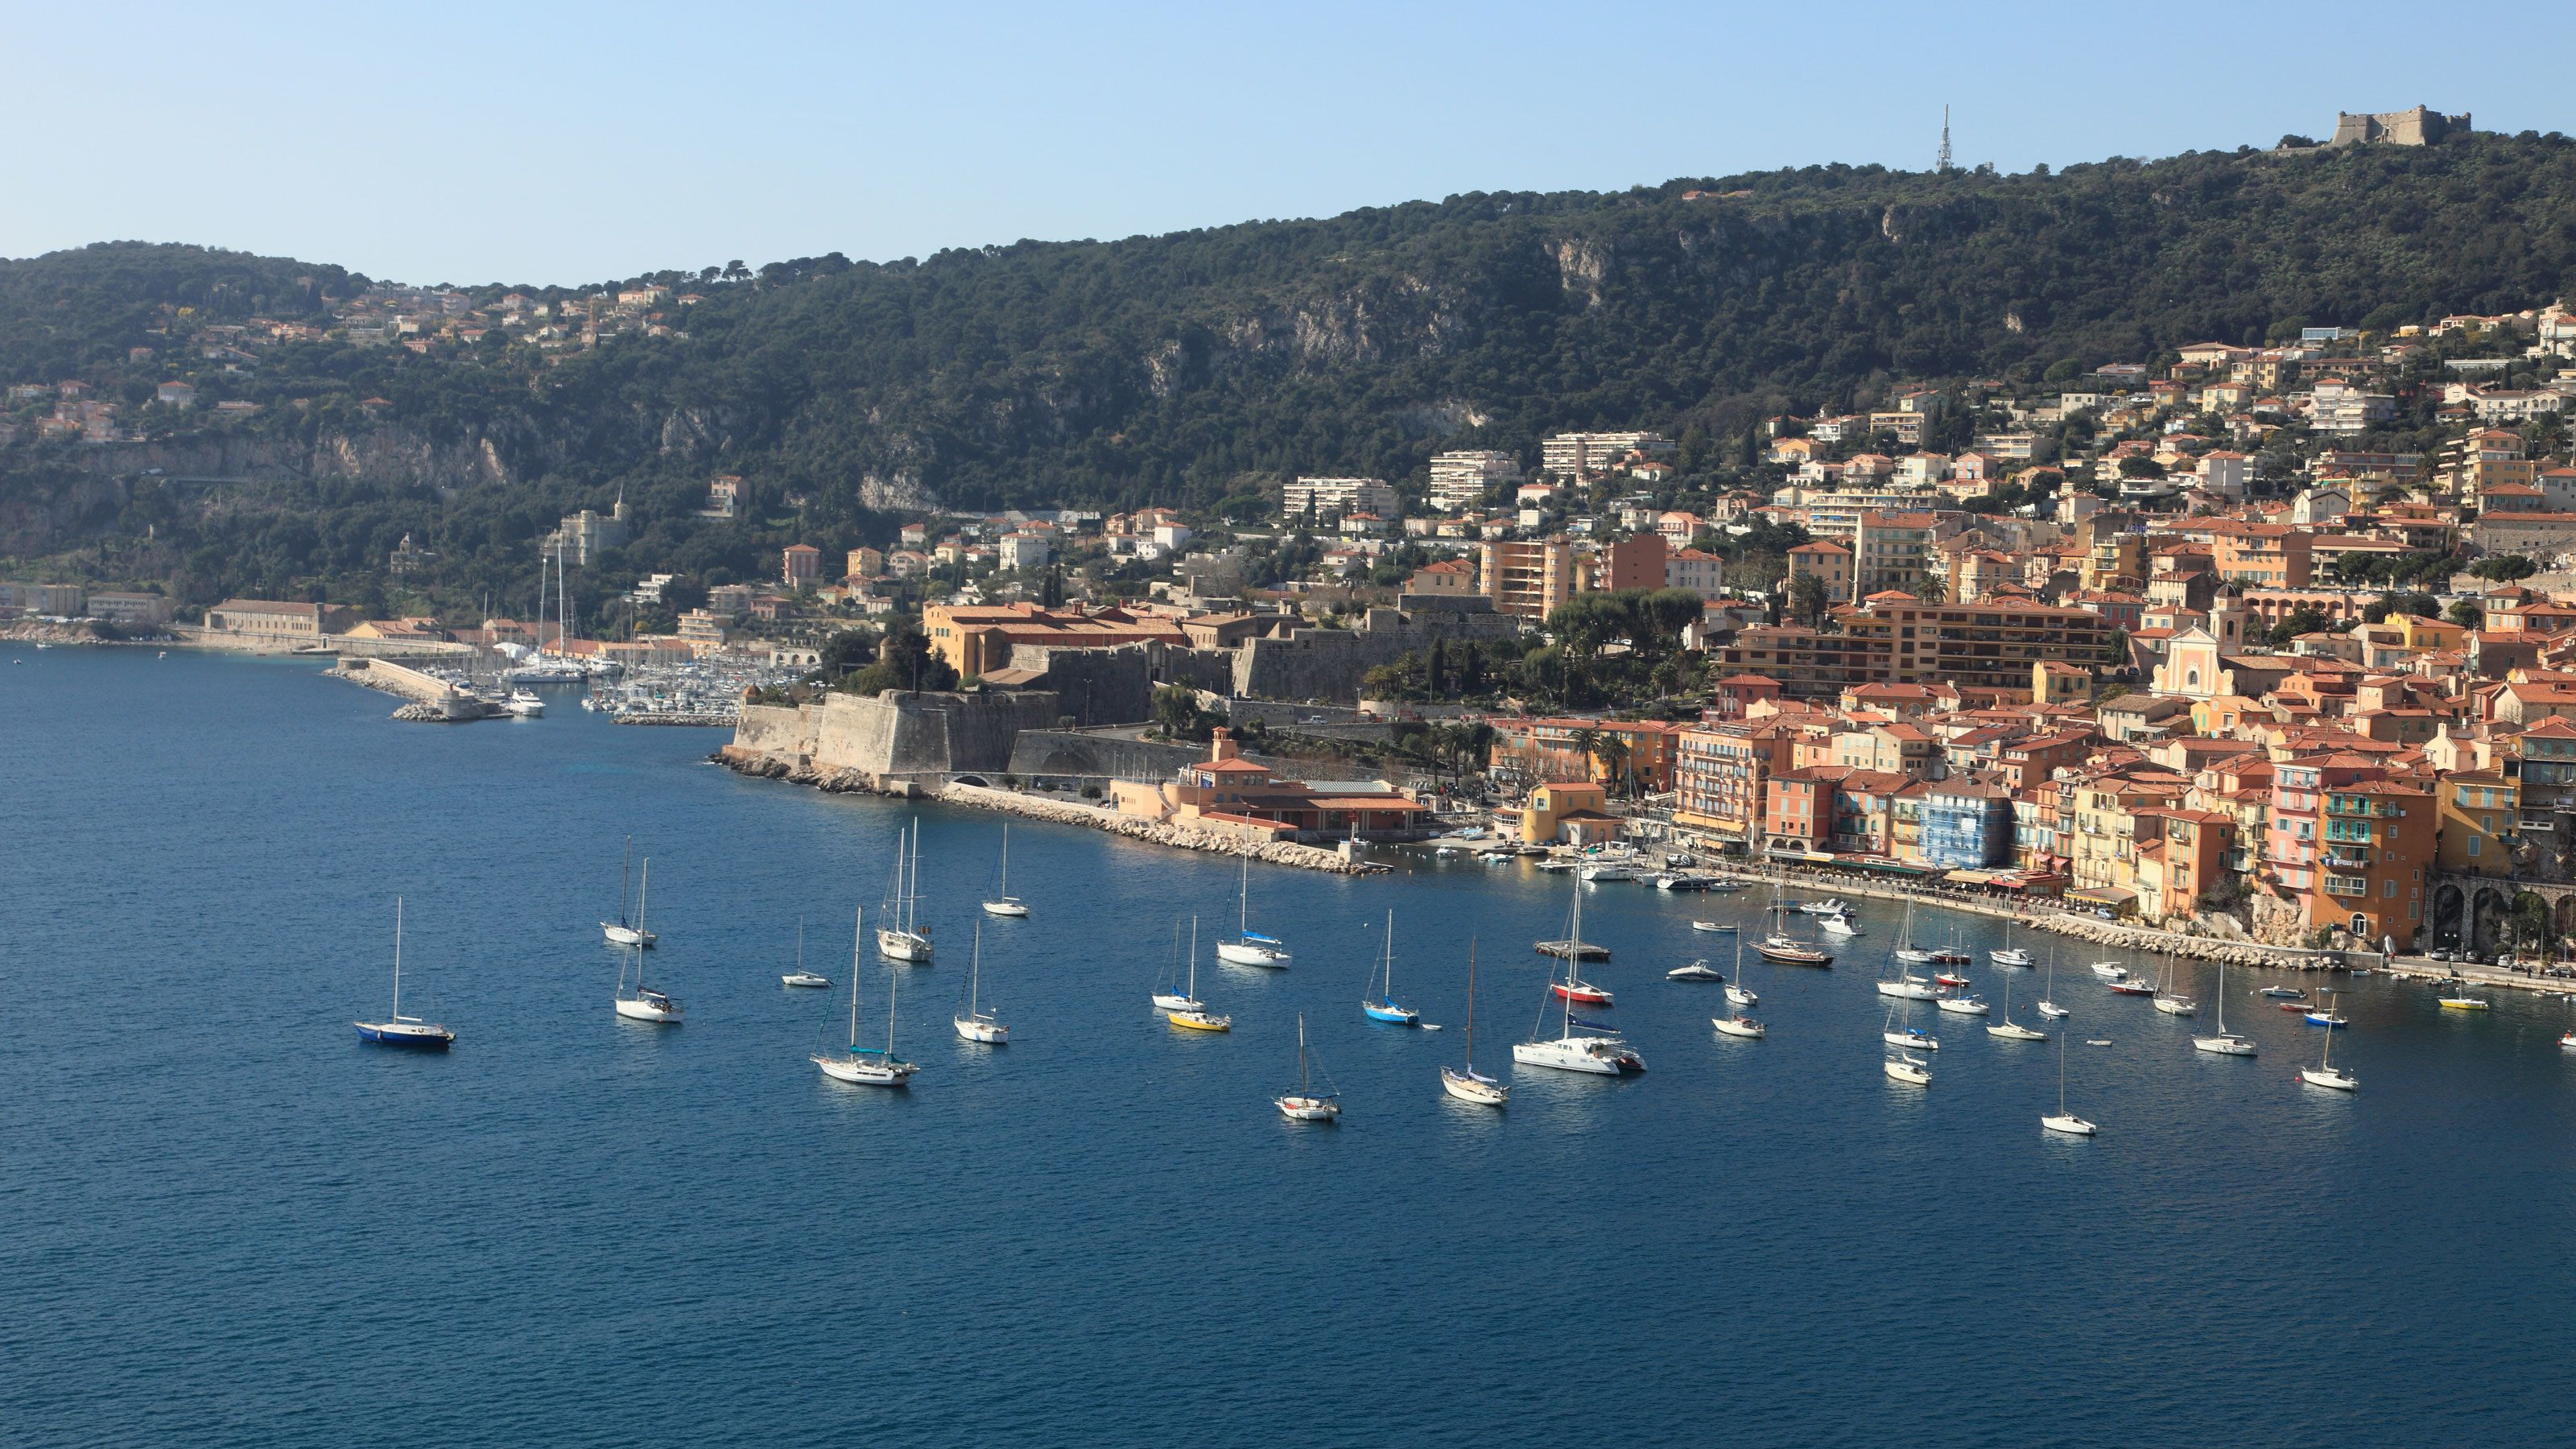 Panoramic view of the Beautiful old town of Monaco